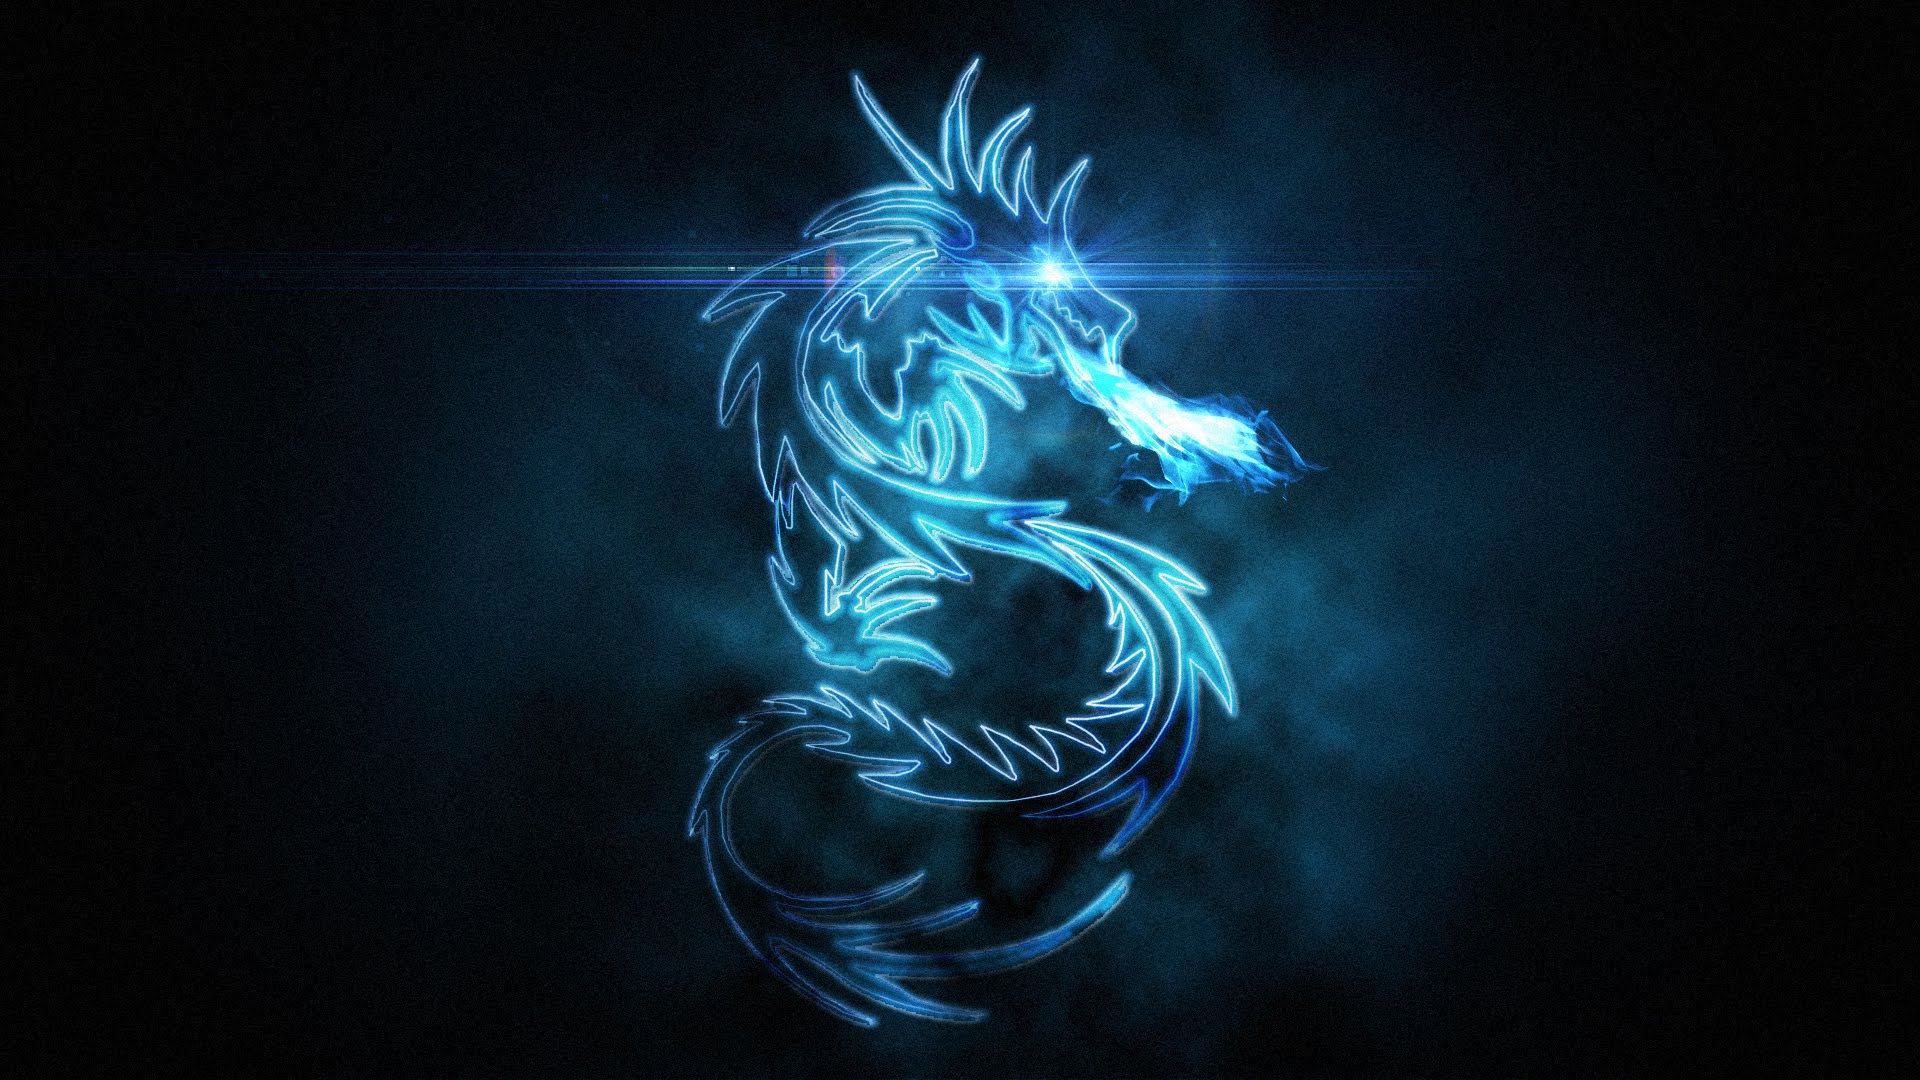 Neon Dragon Wallpapers - Top Free Neon Dragon Backgrounds ...